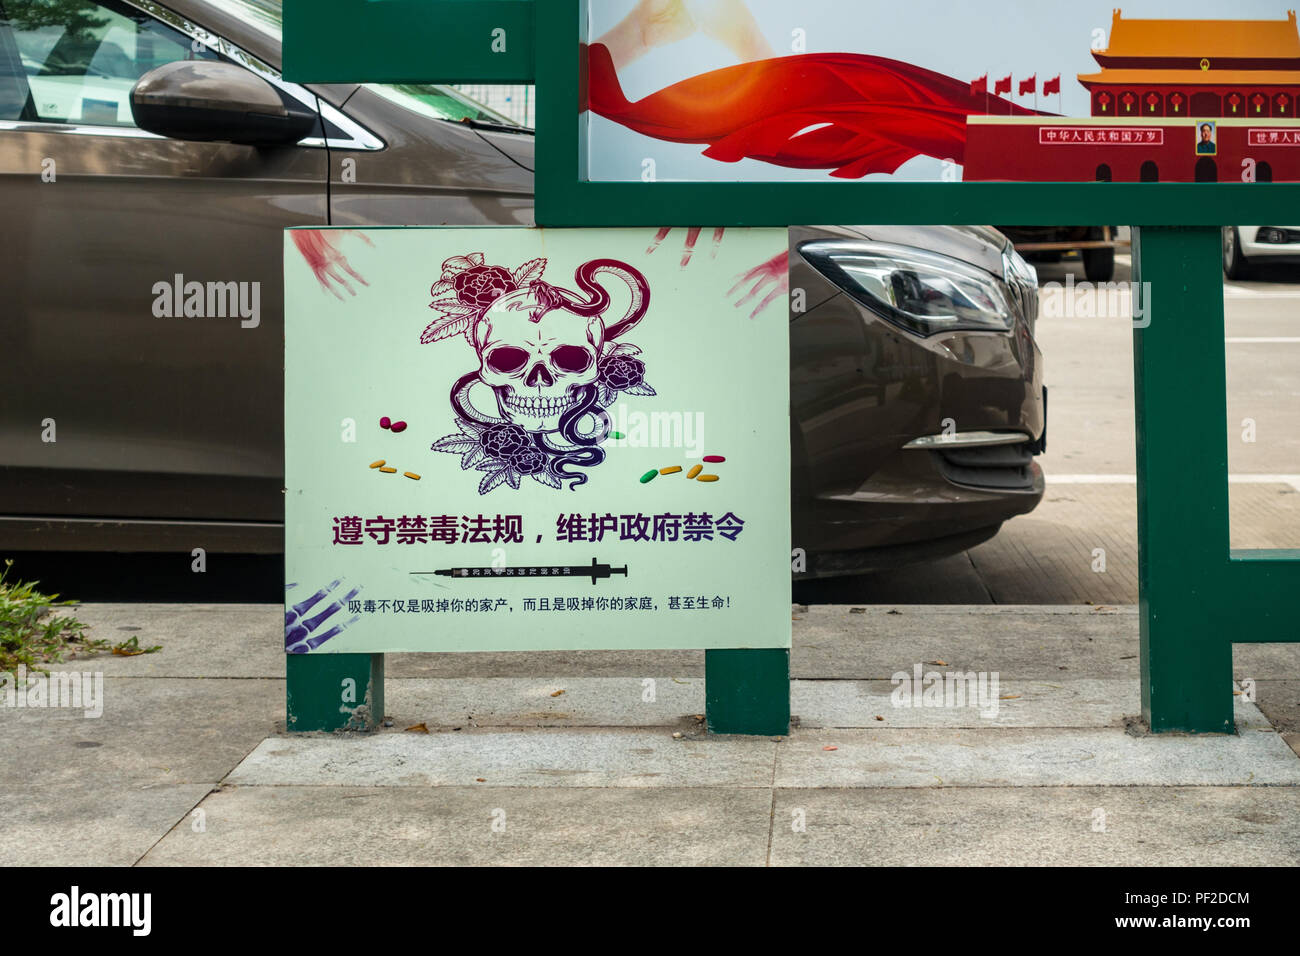 Anti-drugs public awareness campaign poster in Shenzhen, China - Stock Image